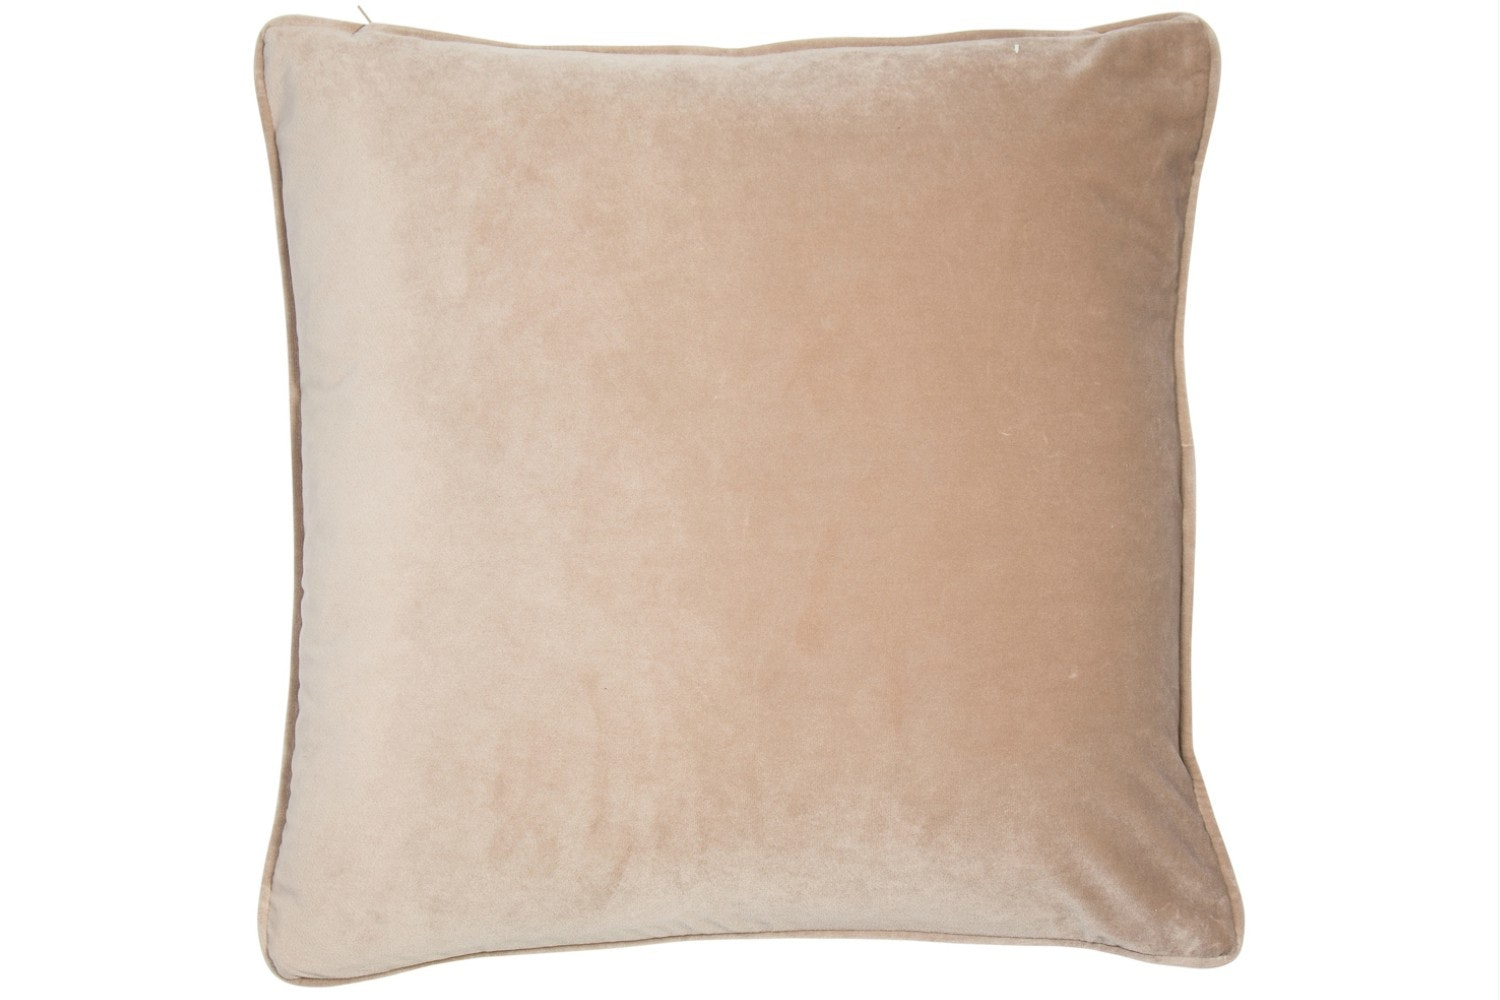 Plain Mink Piped Velvet Cushion